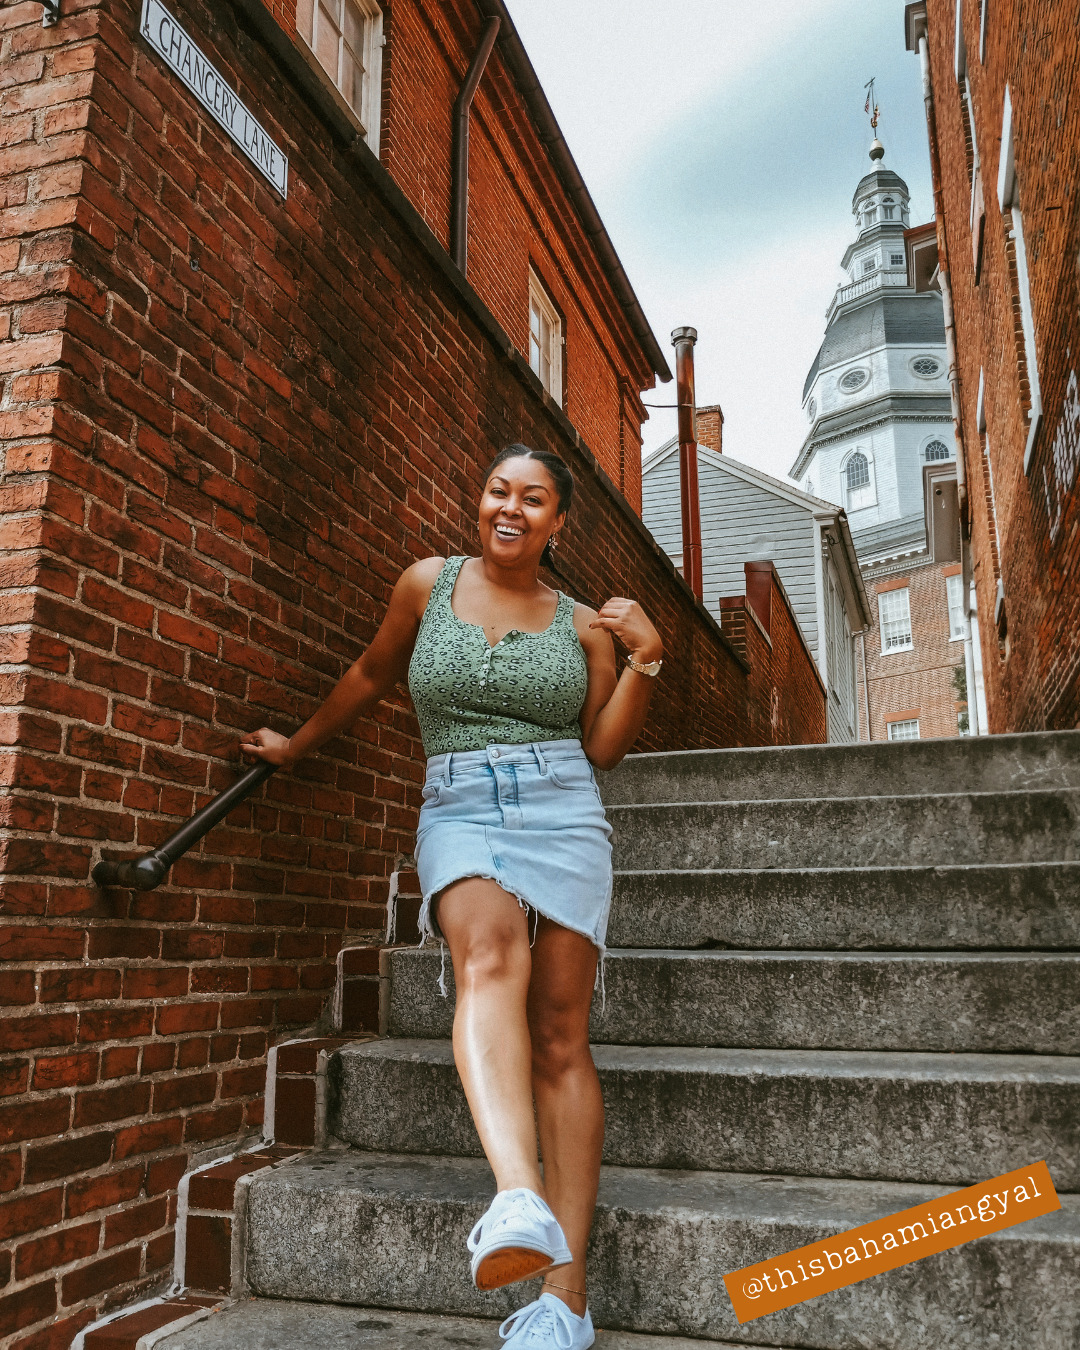 DC blogger Rogan Smith poses on steps in Annapolis Maryland